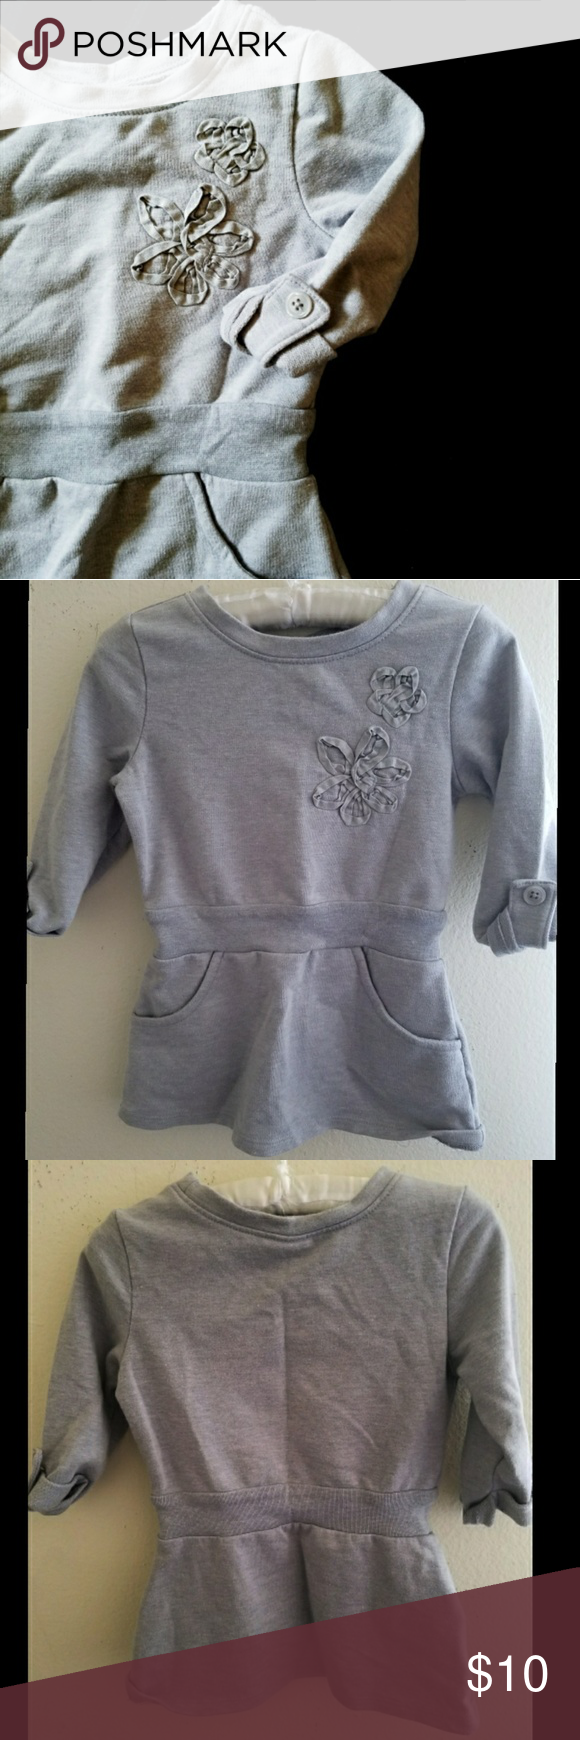 GRAY TUNIC SWEATER TOP 12-18 M Cute sweater tunic top. Excellent ...